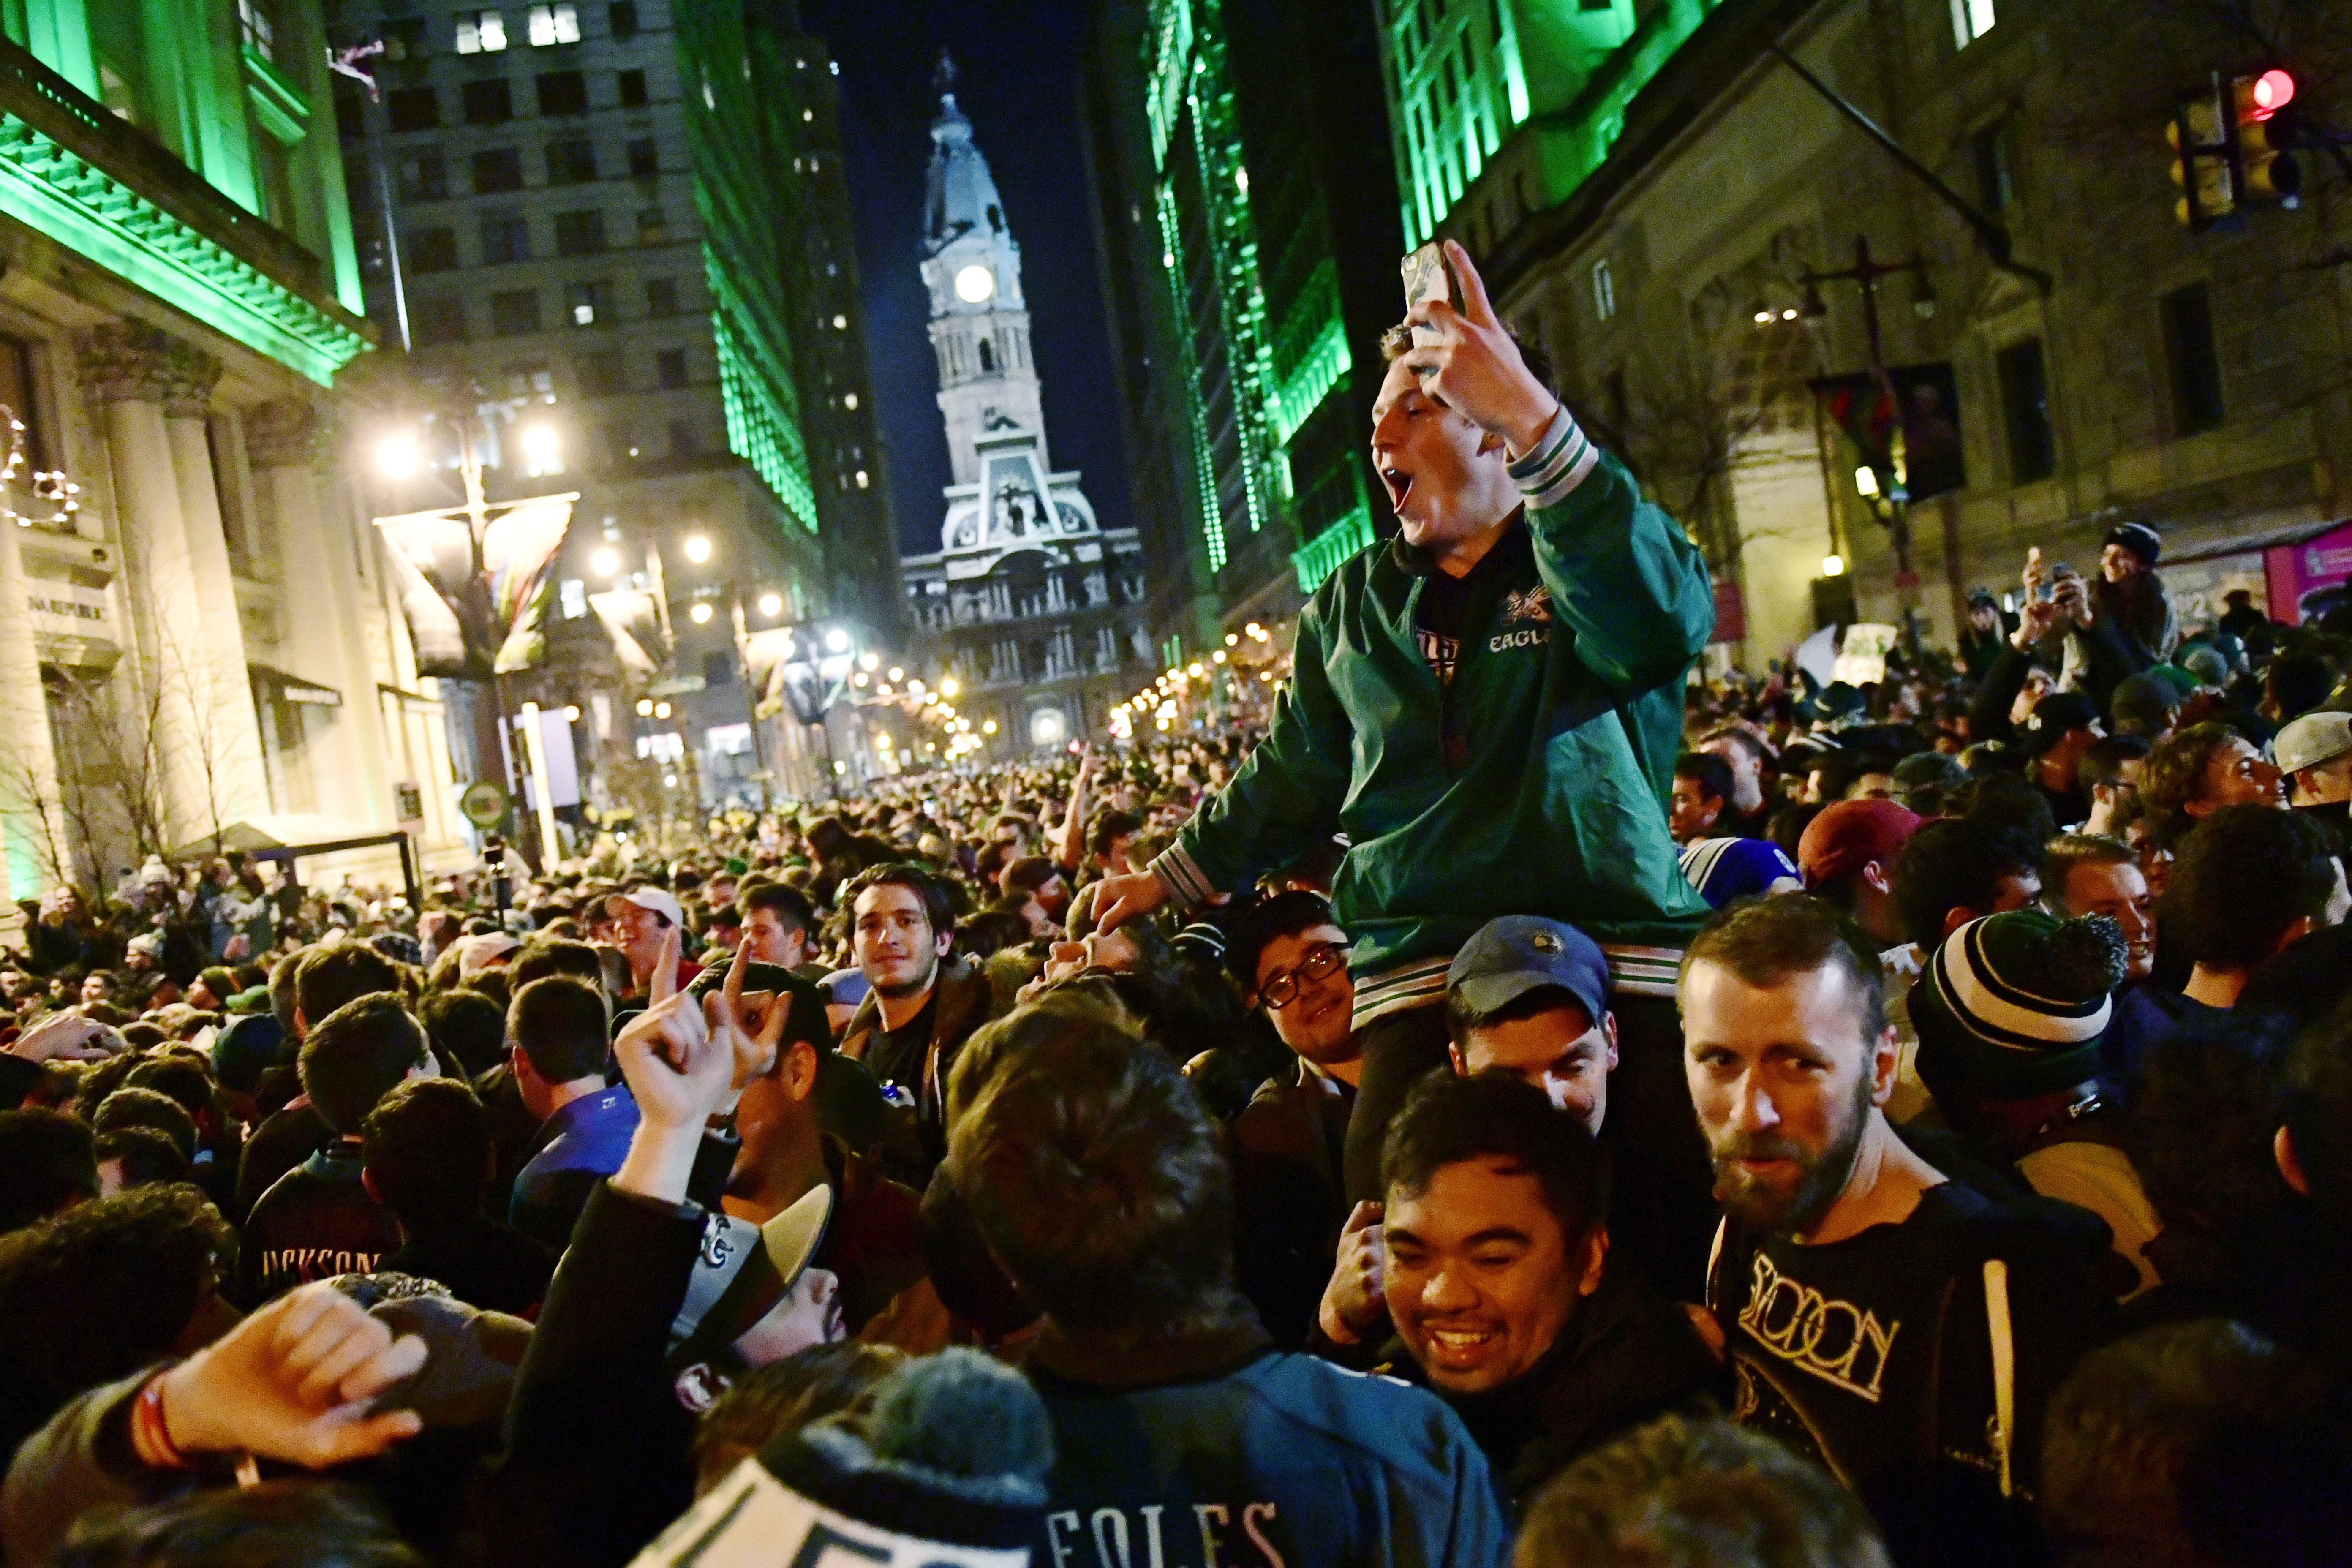 Eagles fans react to Super Bowl LII on Walnut and Broad Streets near City Hall on February 4, 2018 in downtown Philadelphia, Pennsylvania.